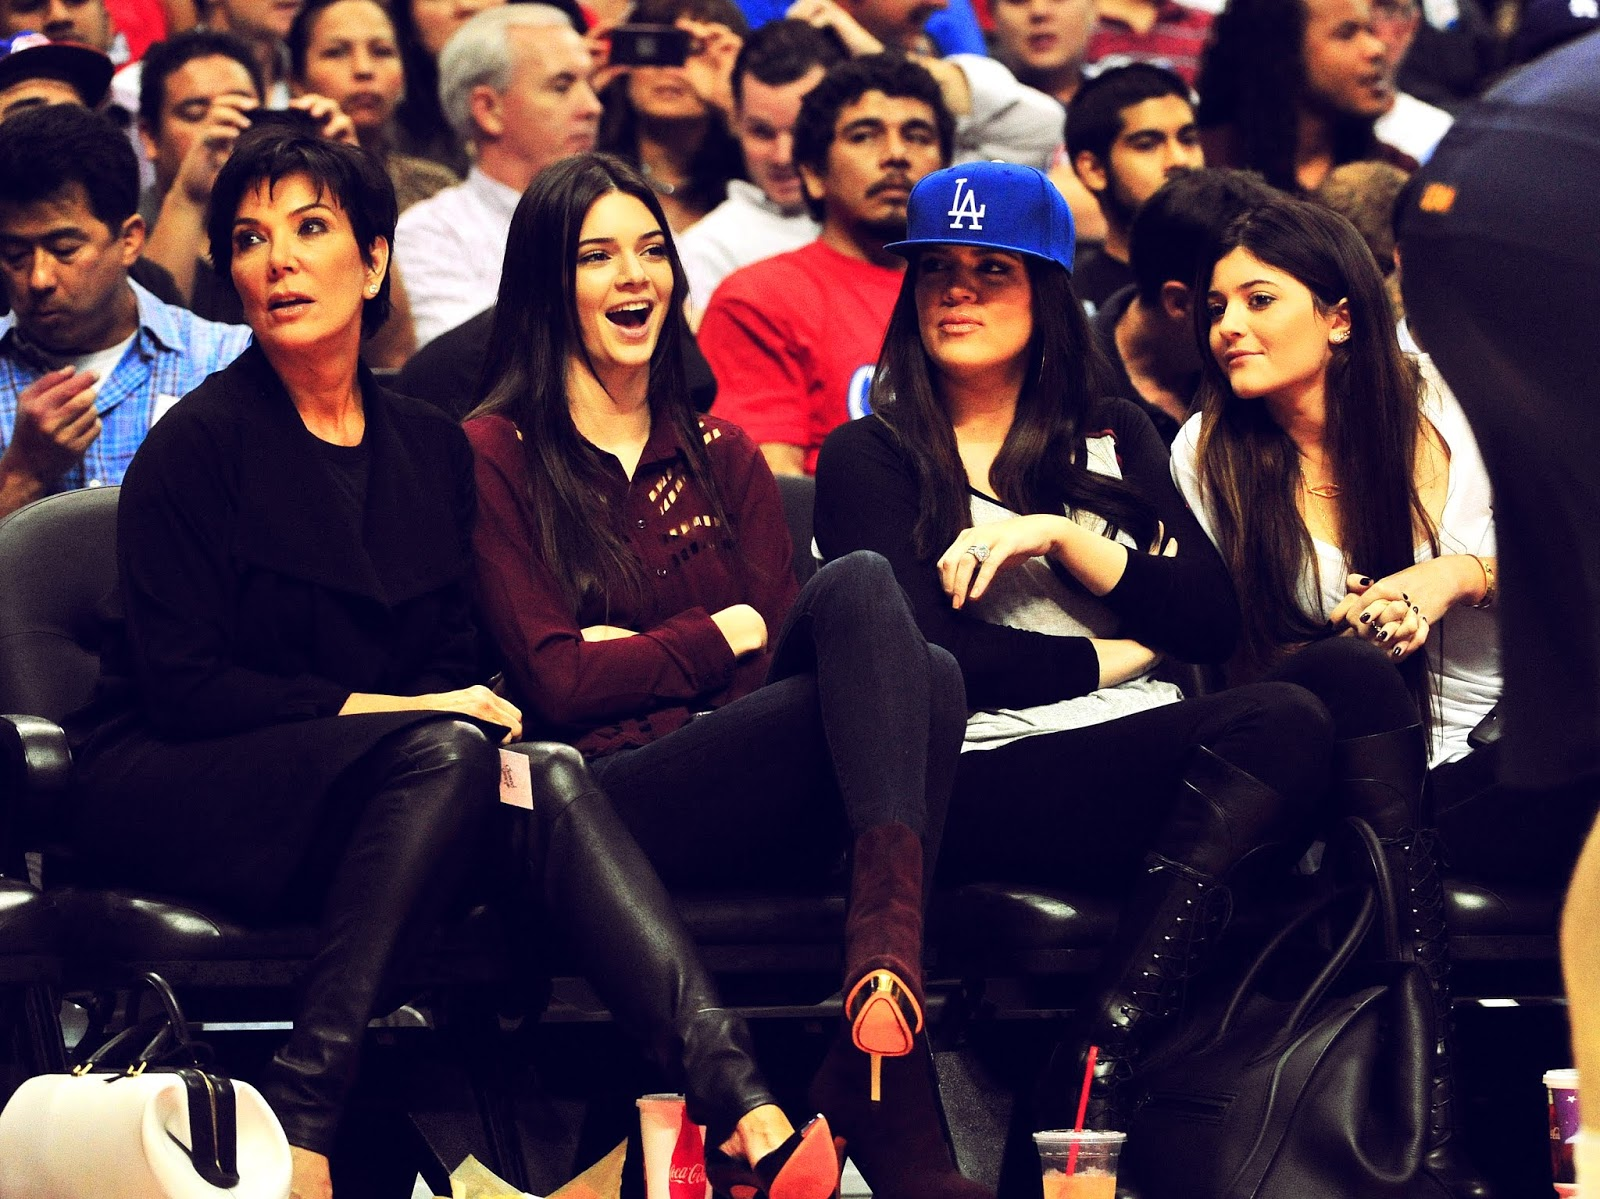 16 - Watching The Los Angeles Clippers Game on October 17, 2012